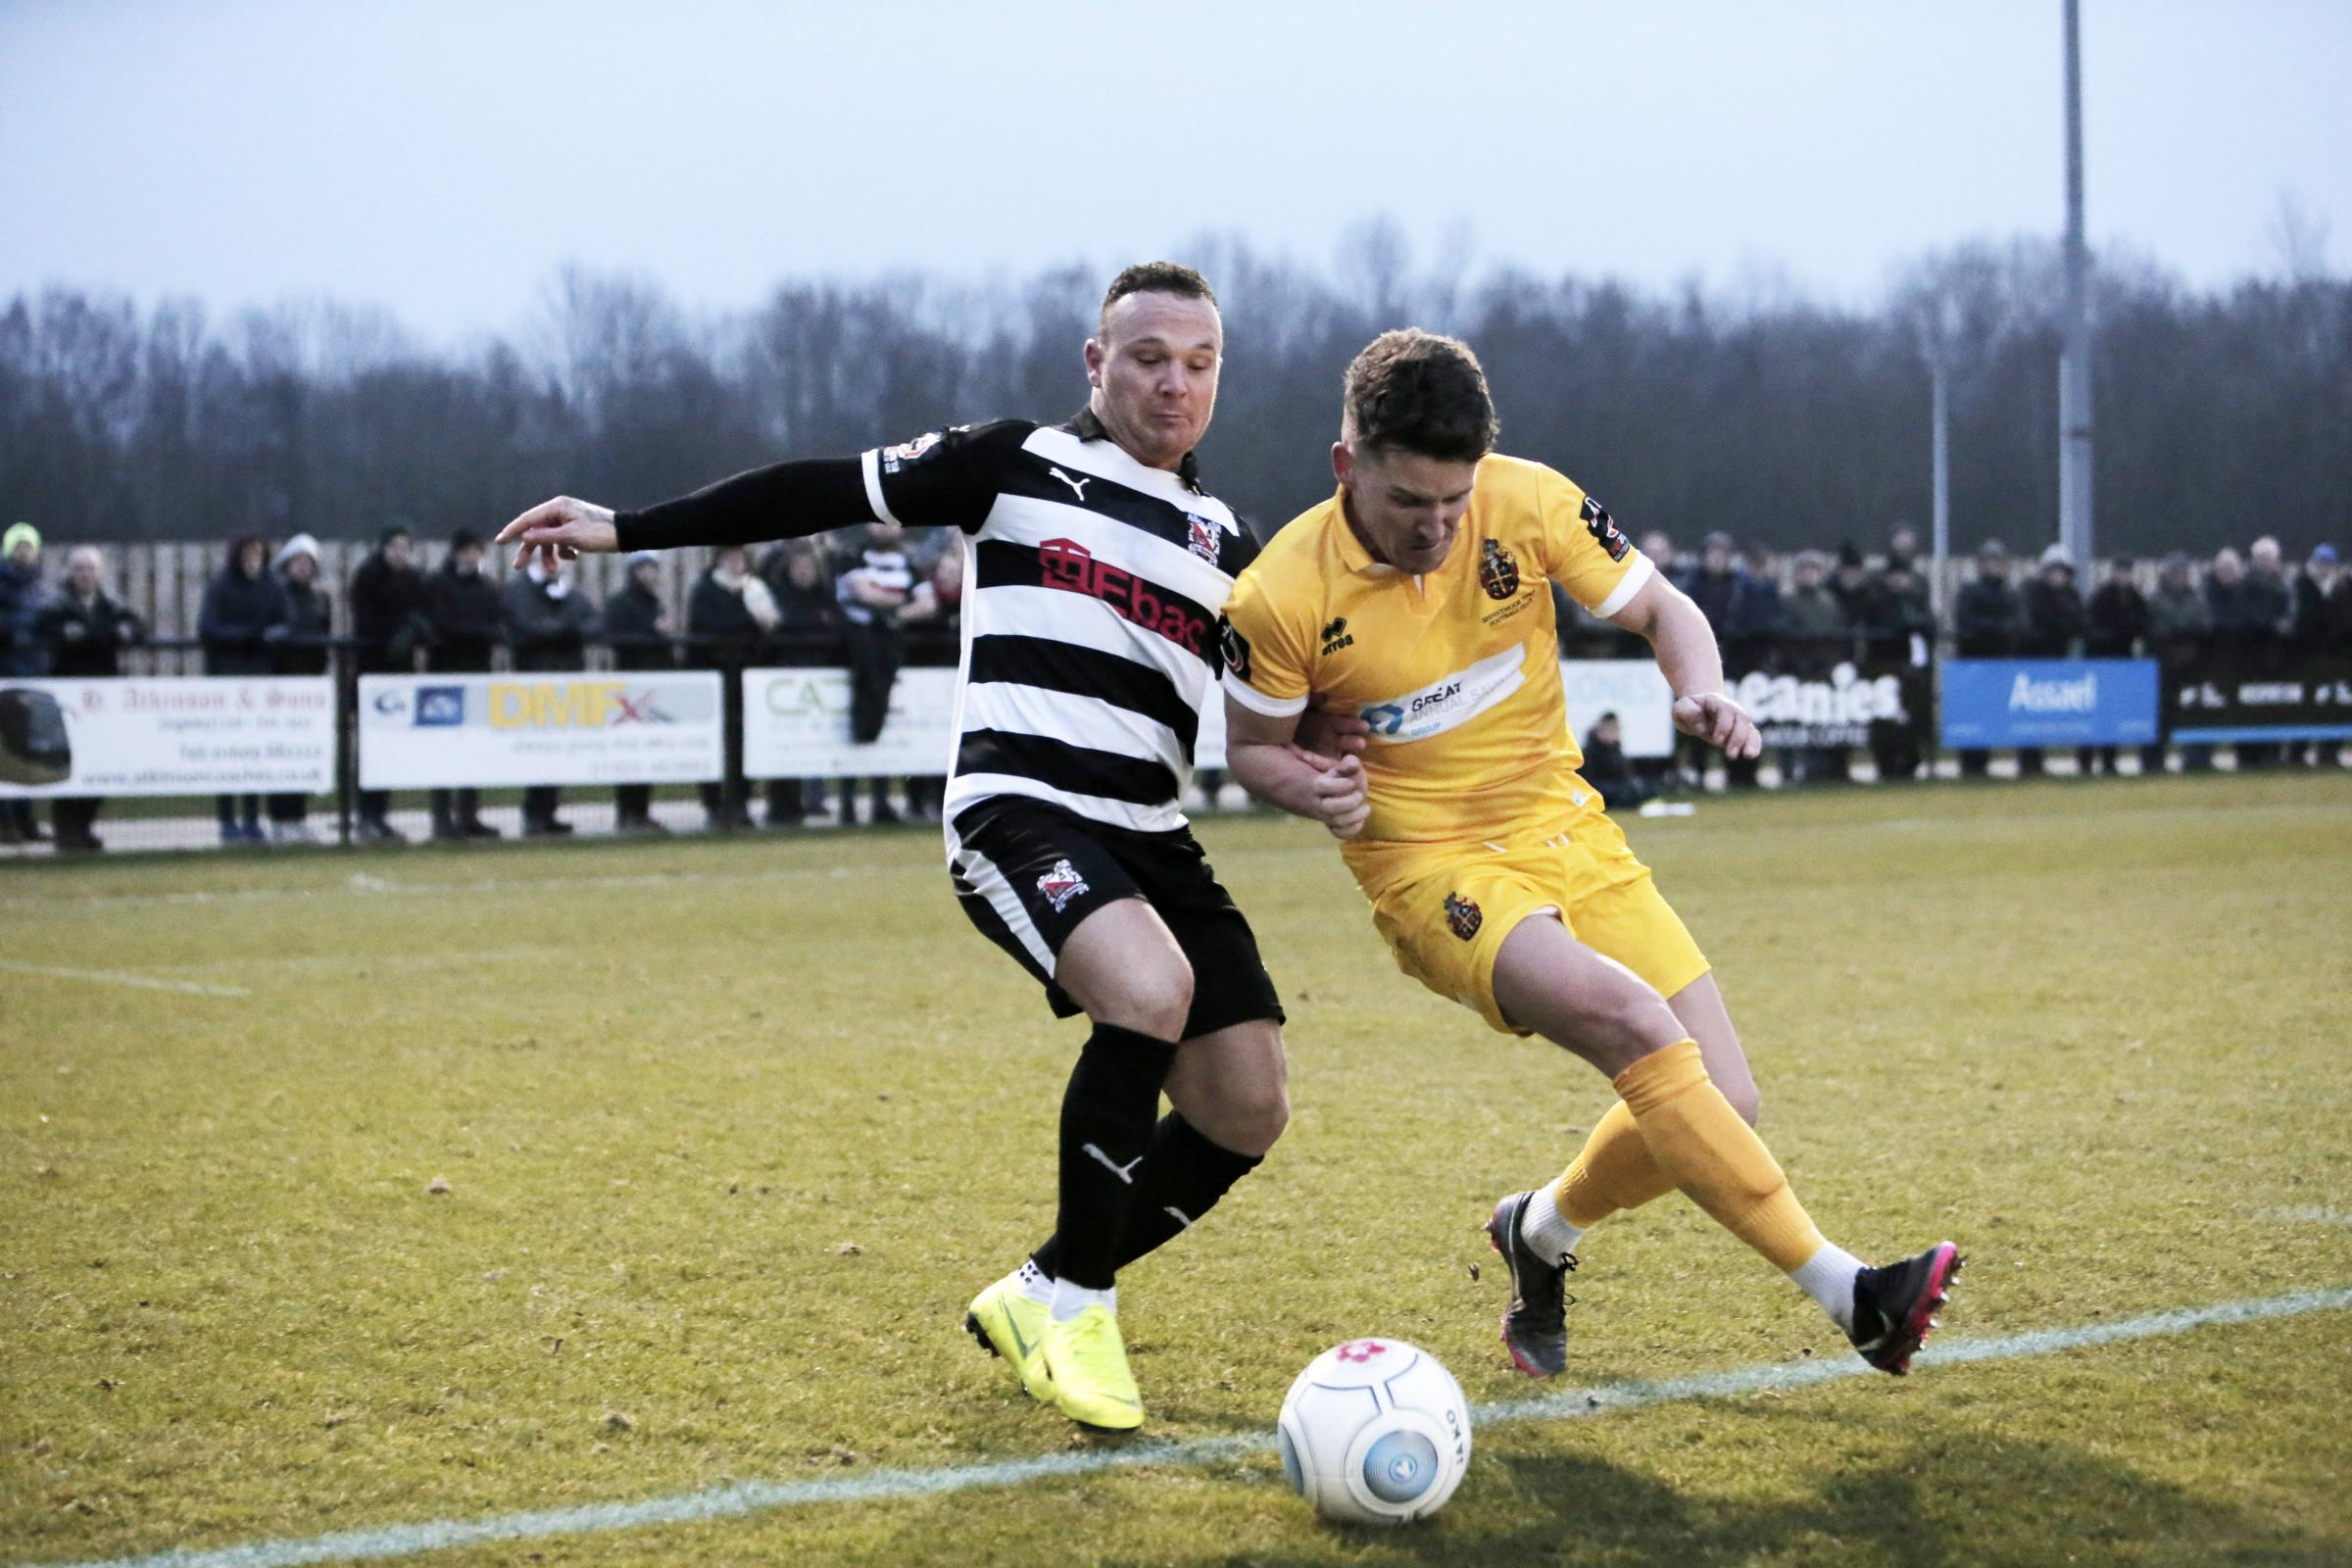 Darlo Diary: No complaints about Darlington's performance in defeat to Spennymoor